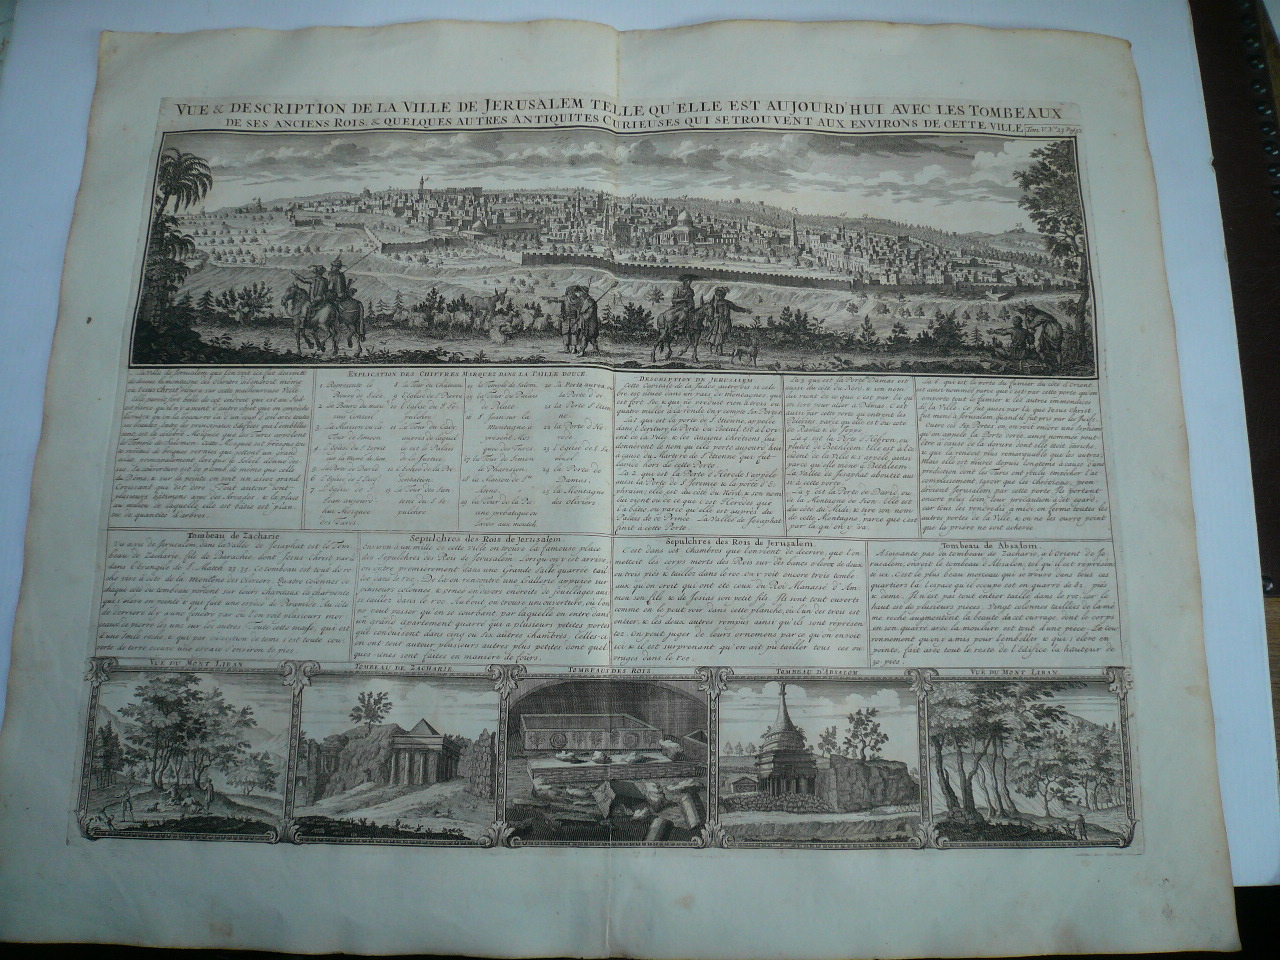 Vue & description de la Ville de Jerusalem, anno 1719, Chatelain